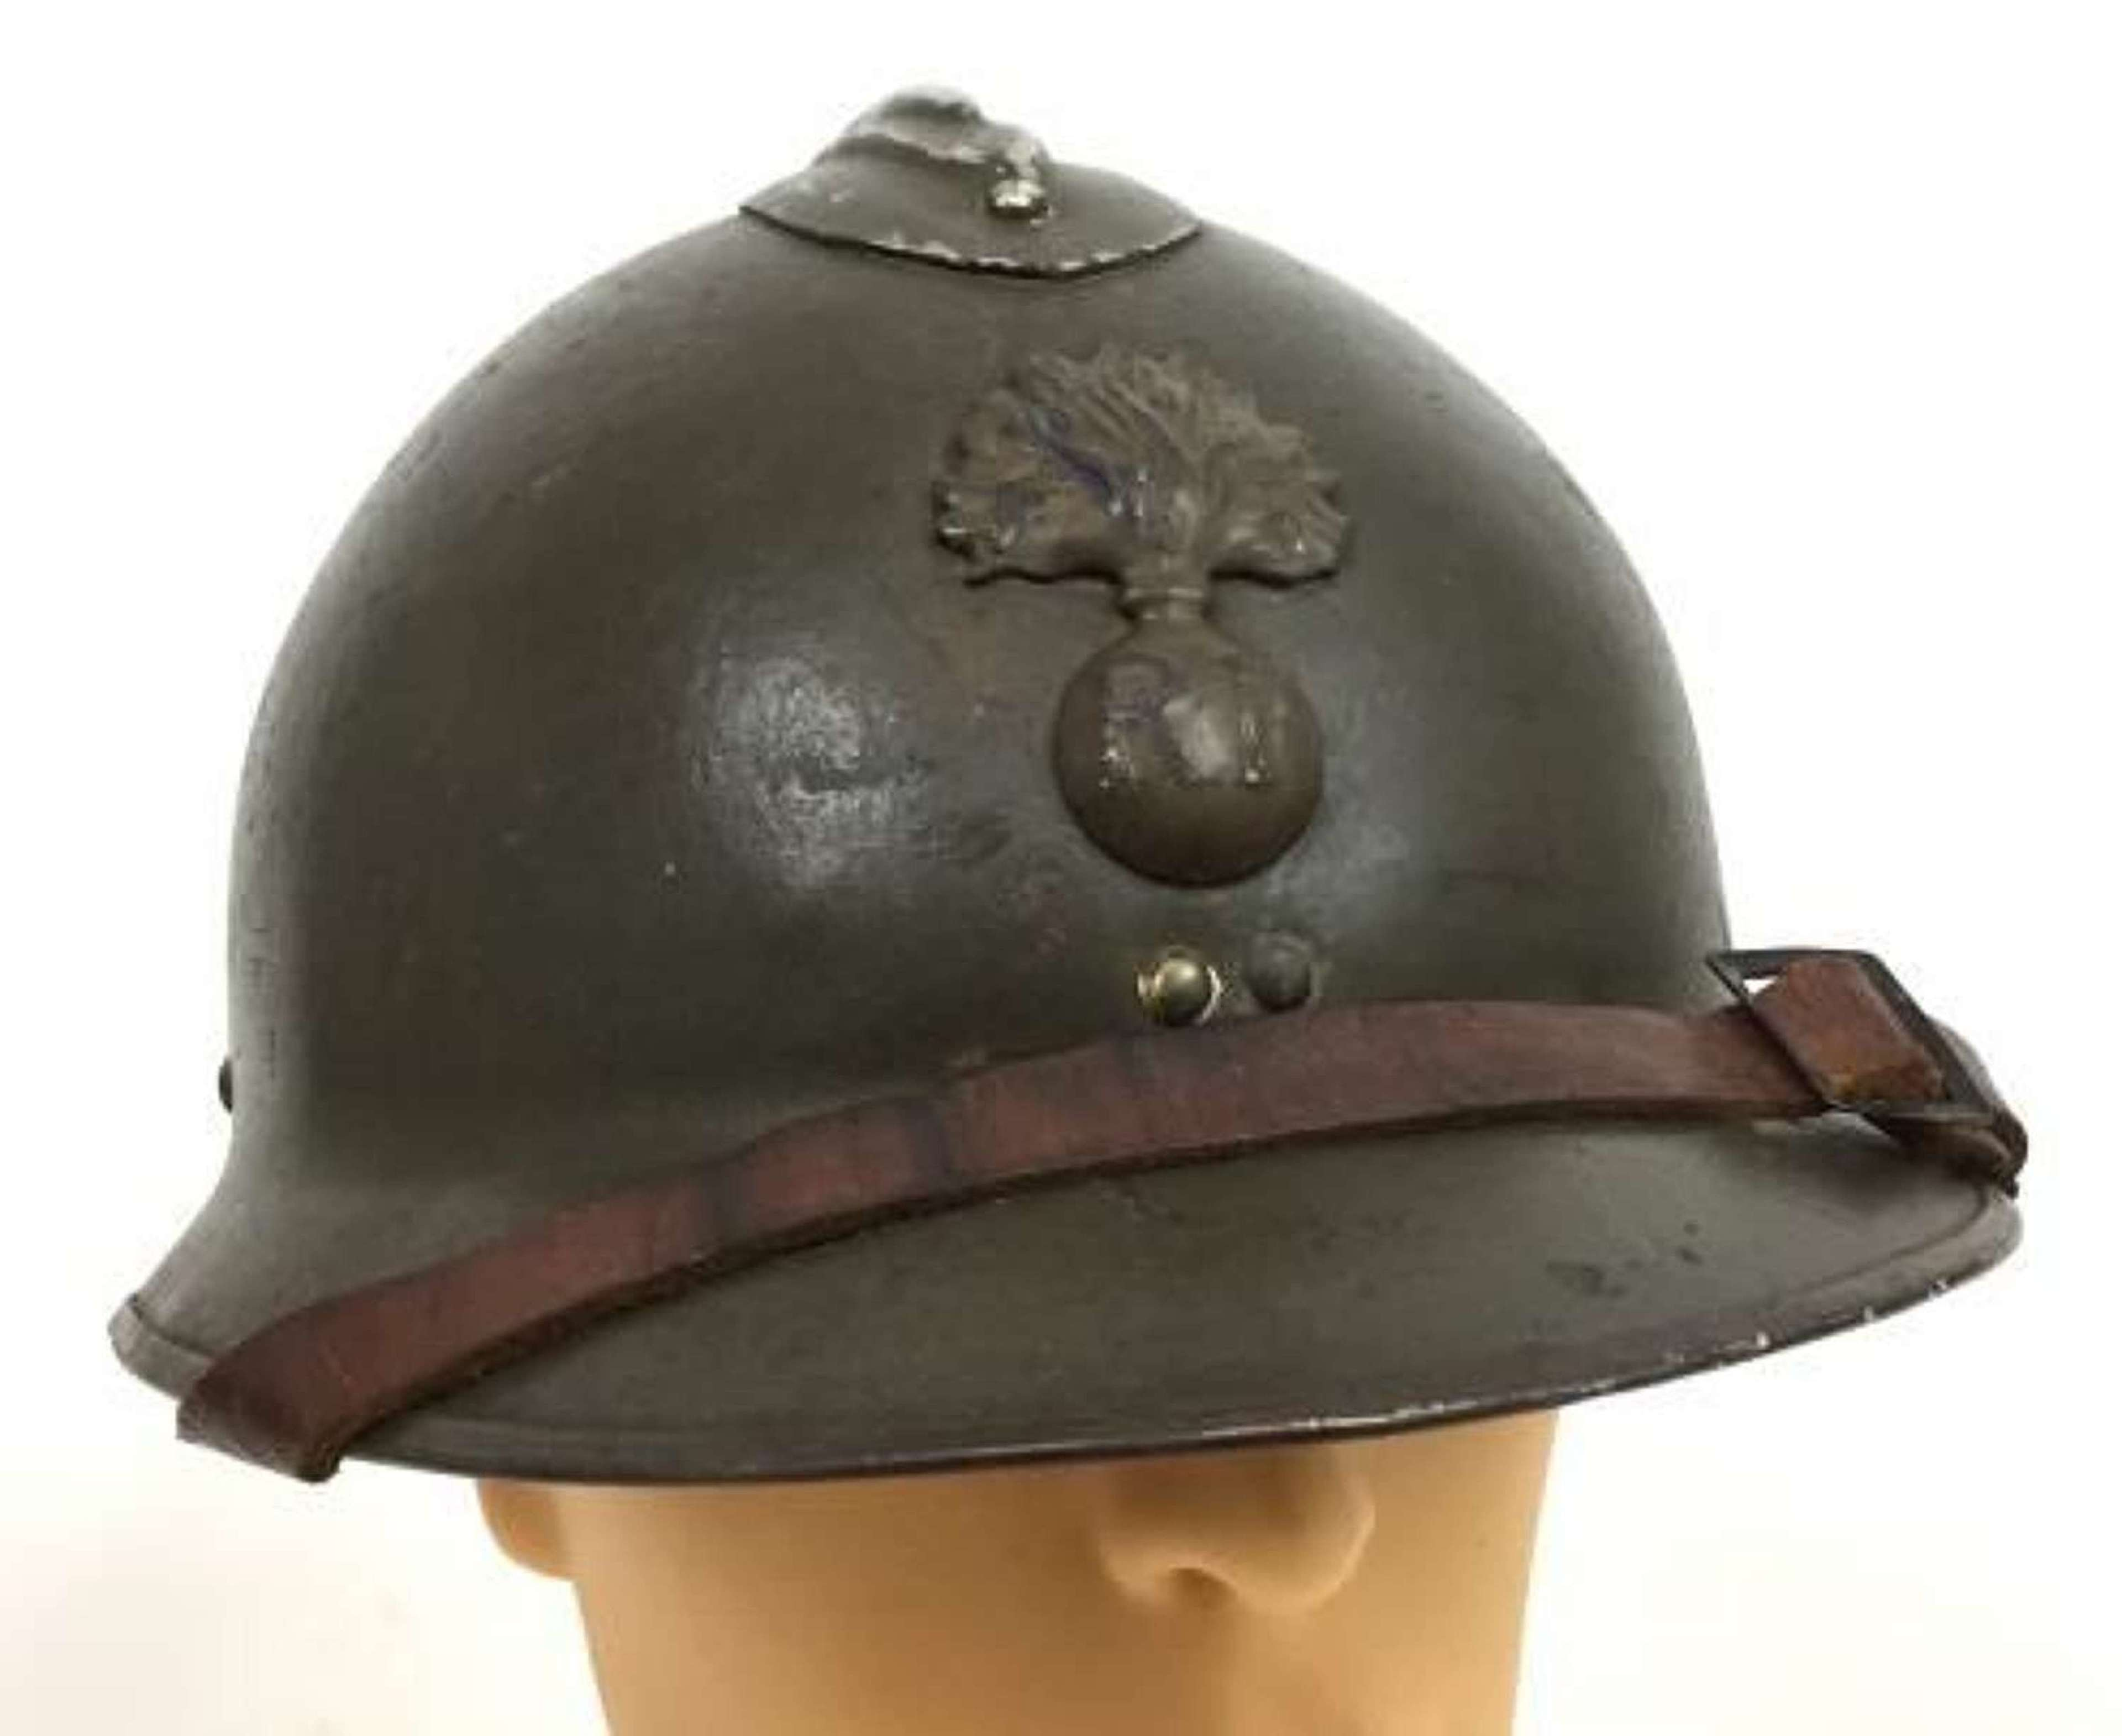 Original French M26 Adrian Helmet